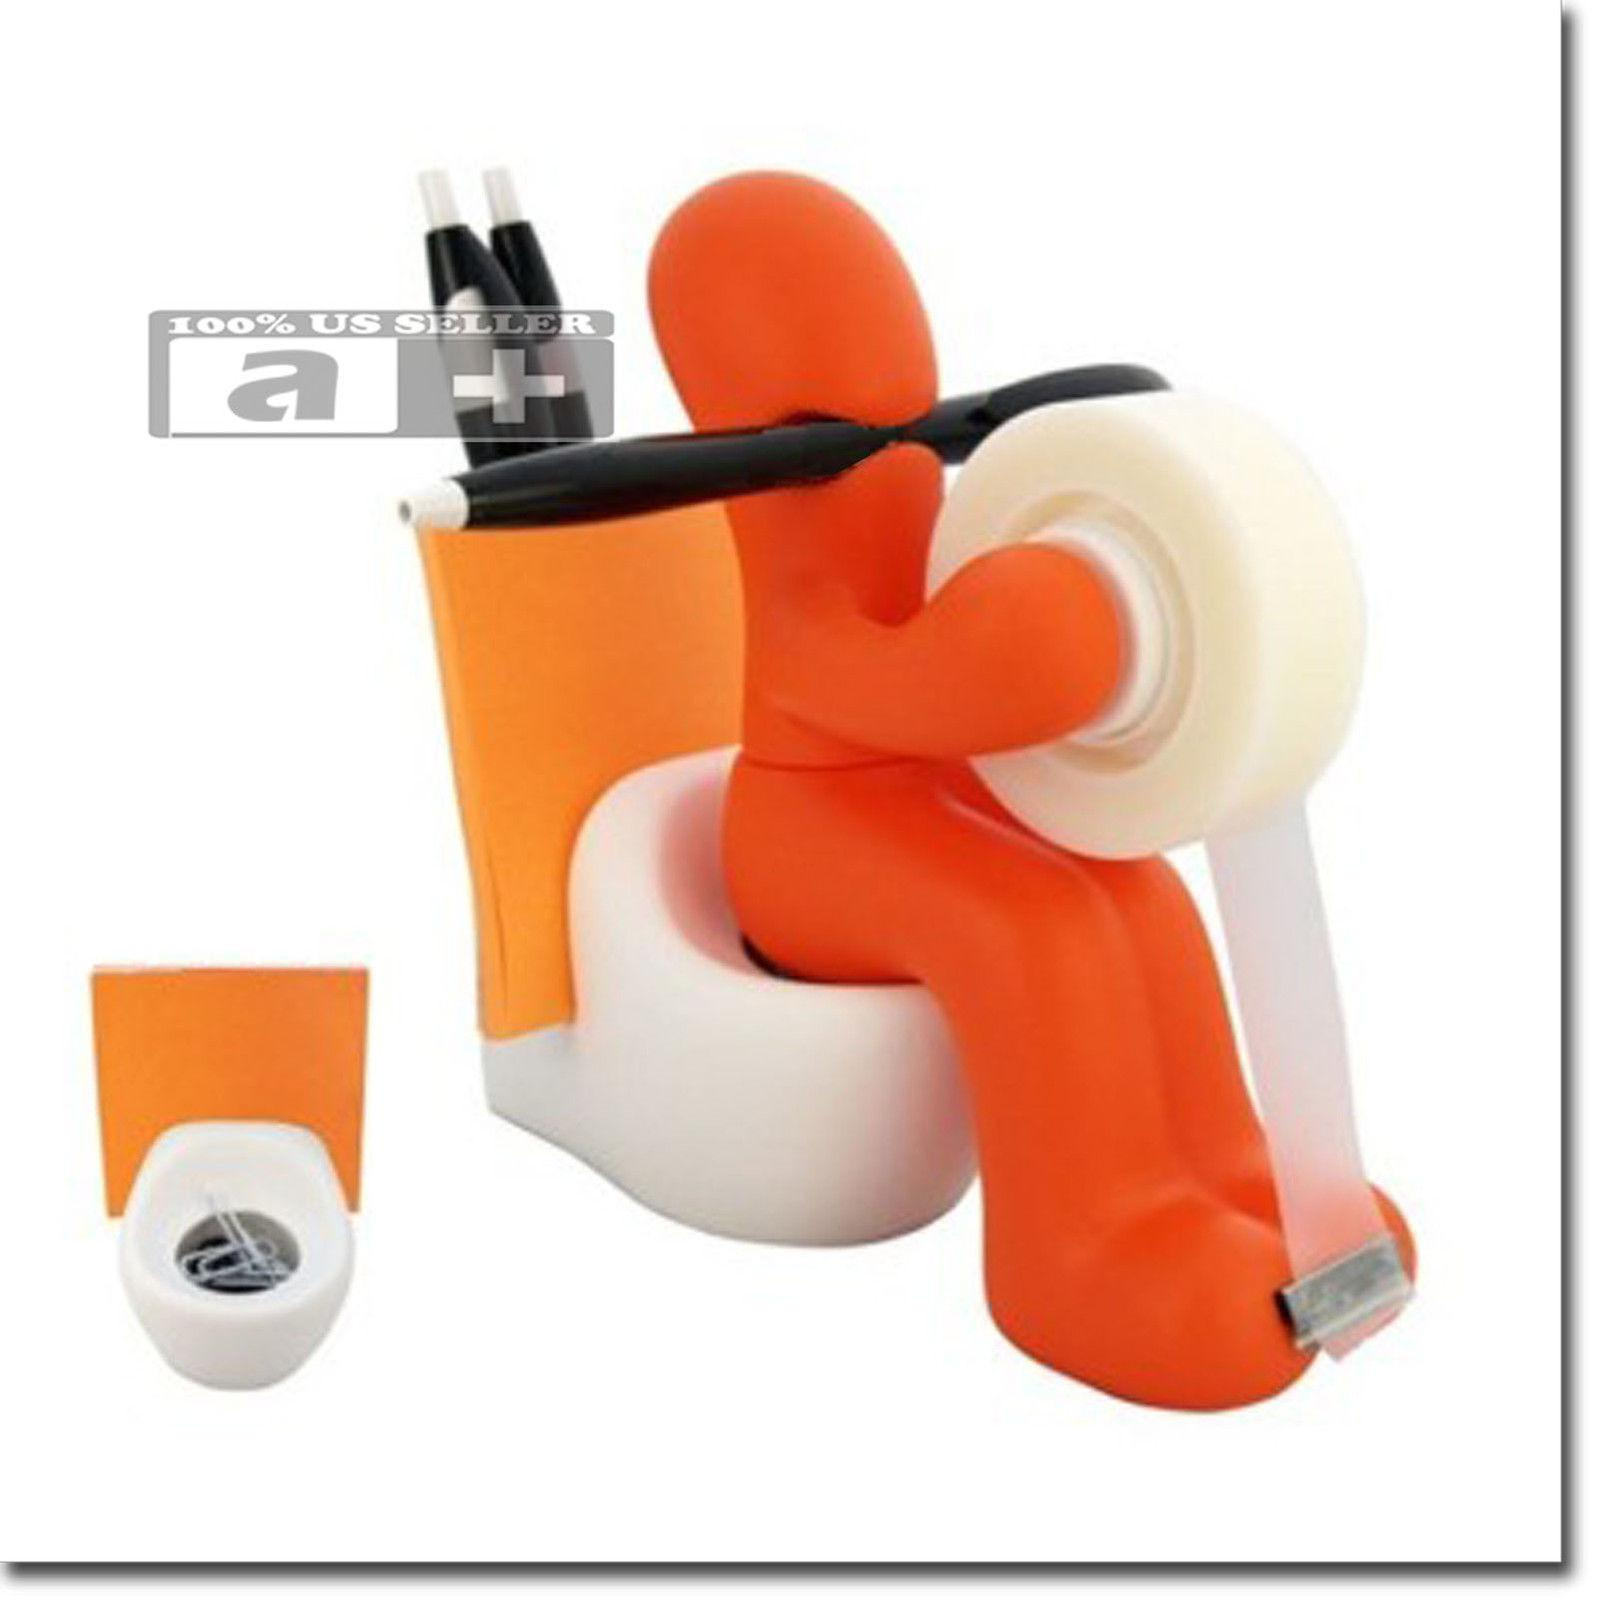 Butt Station Office Desk Organizer Tape Dispenser Pen Memo